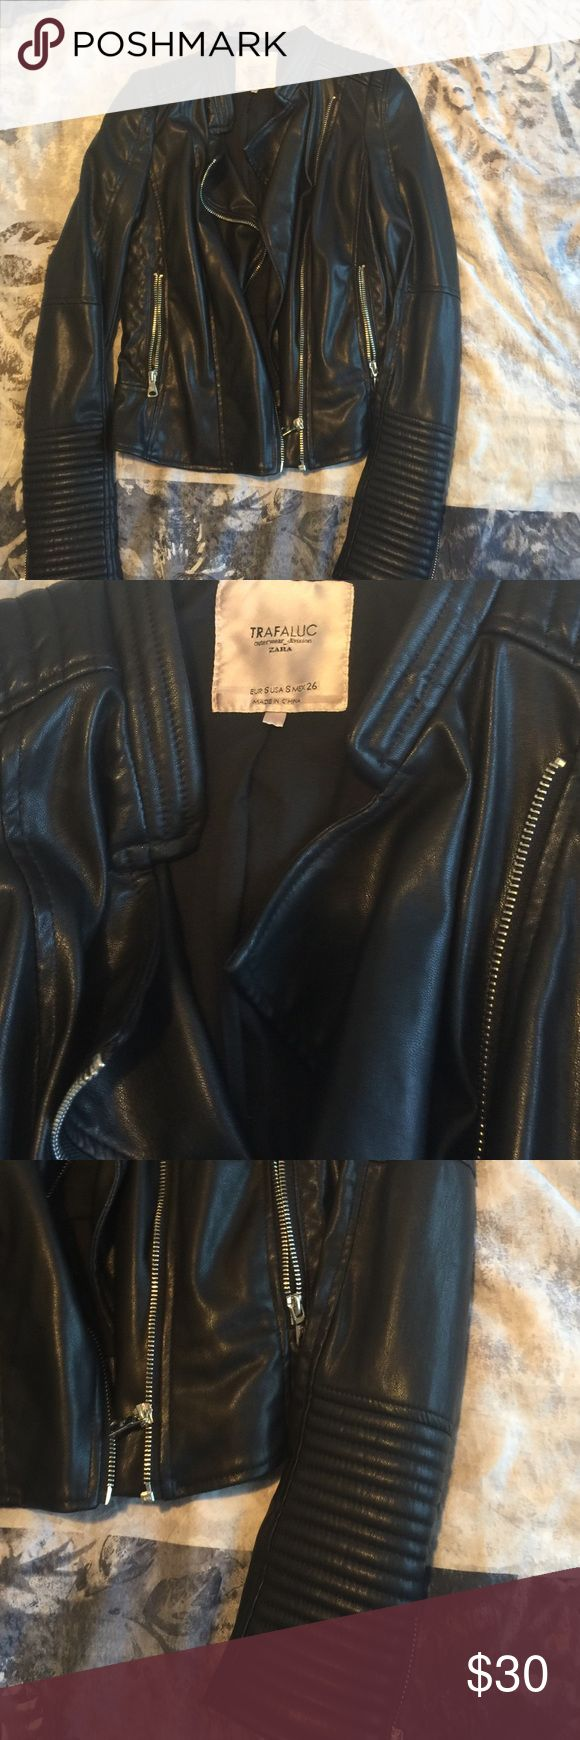 Faux leather Zara jacket Faux leather Zara jacket size S worn just few times very good condition zara Jackets & Coats